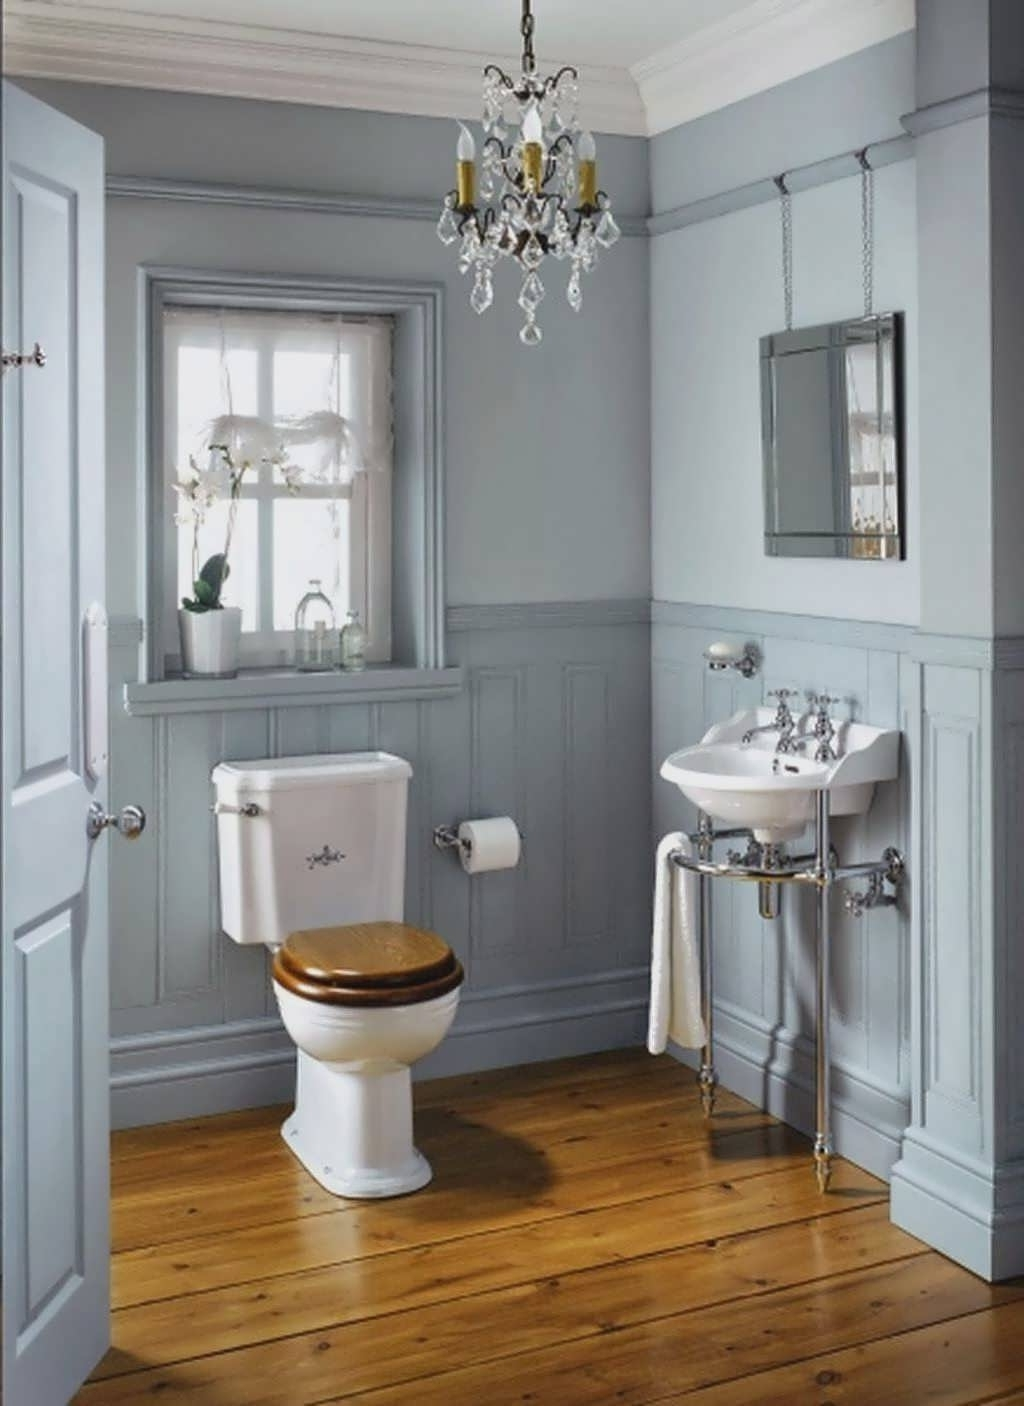 Easy Mini Bathroom Chandelier Remarkable – Home Ideas Inside Well Known Bathroom Chandelier Lighting (View 11 of 20)